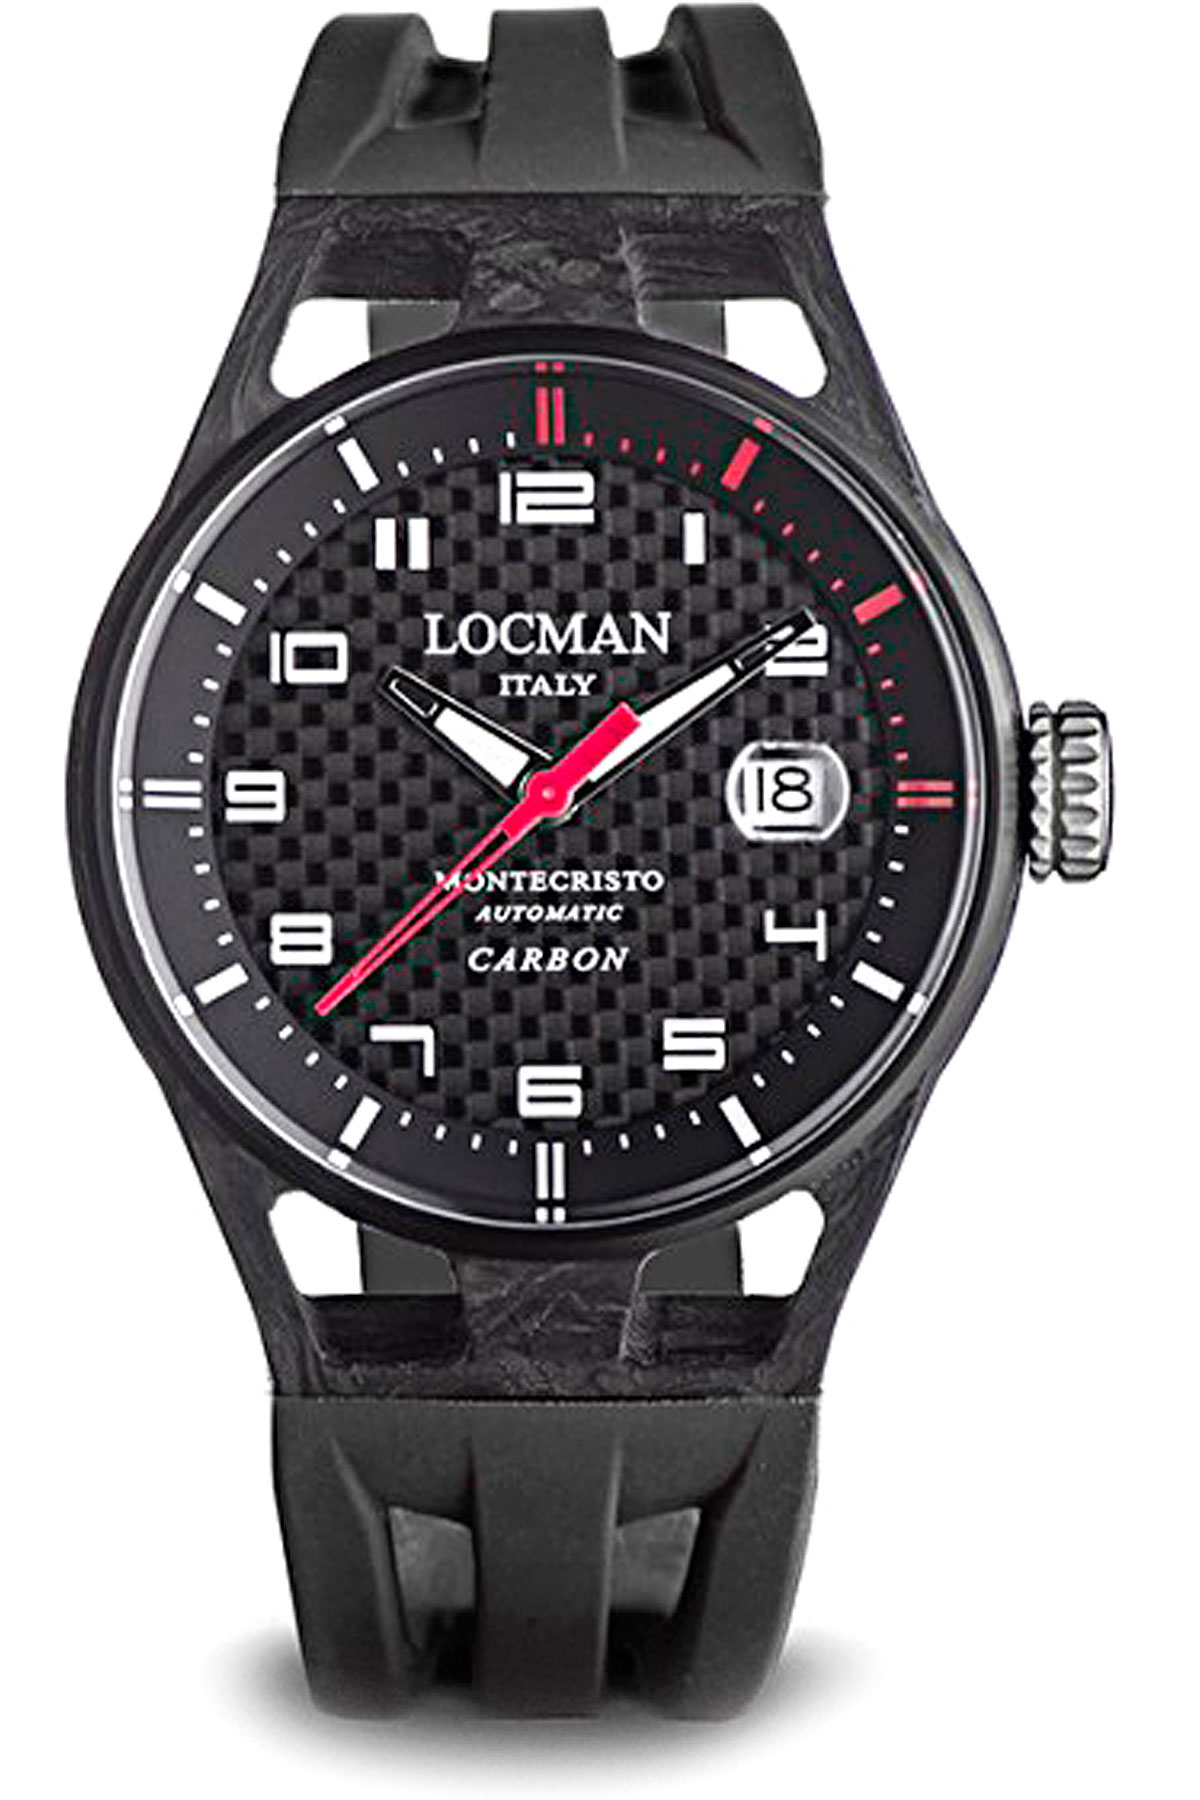 Locman Watch for Men, Black, Carbon, 2019